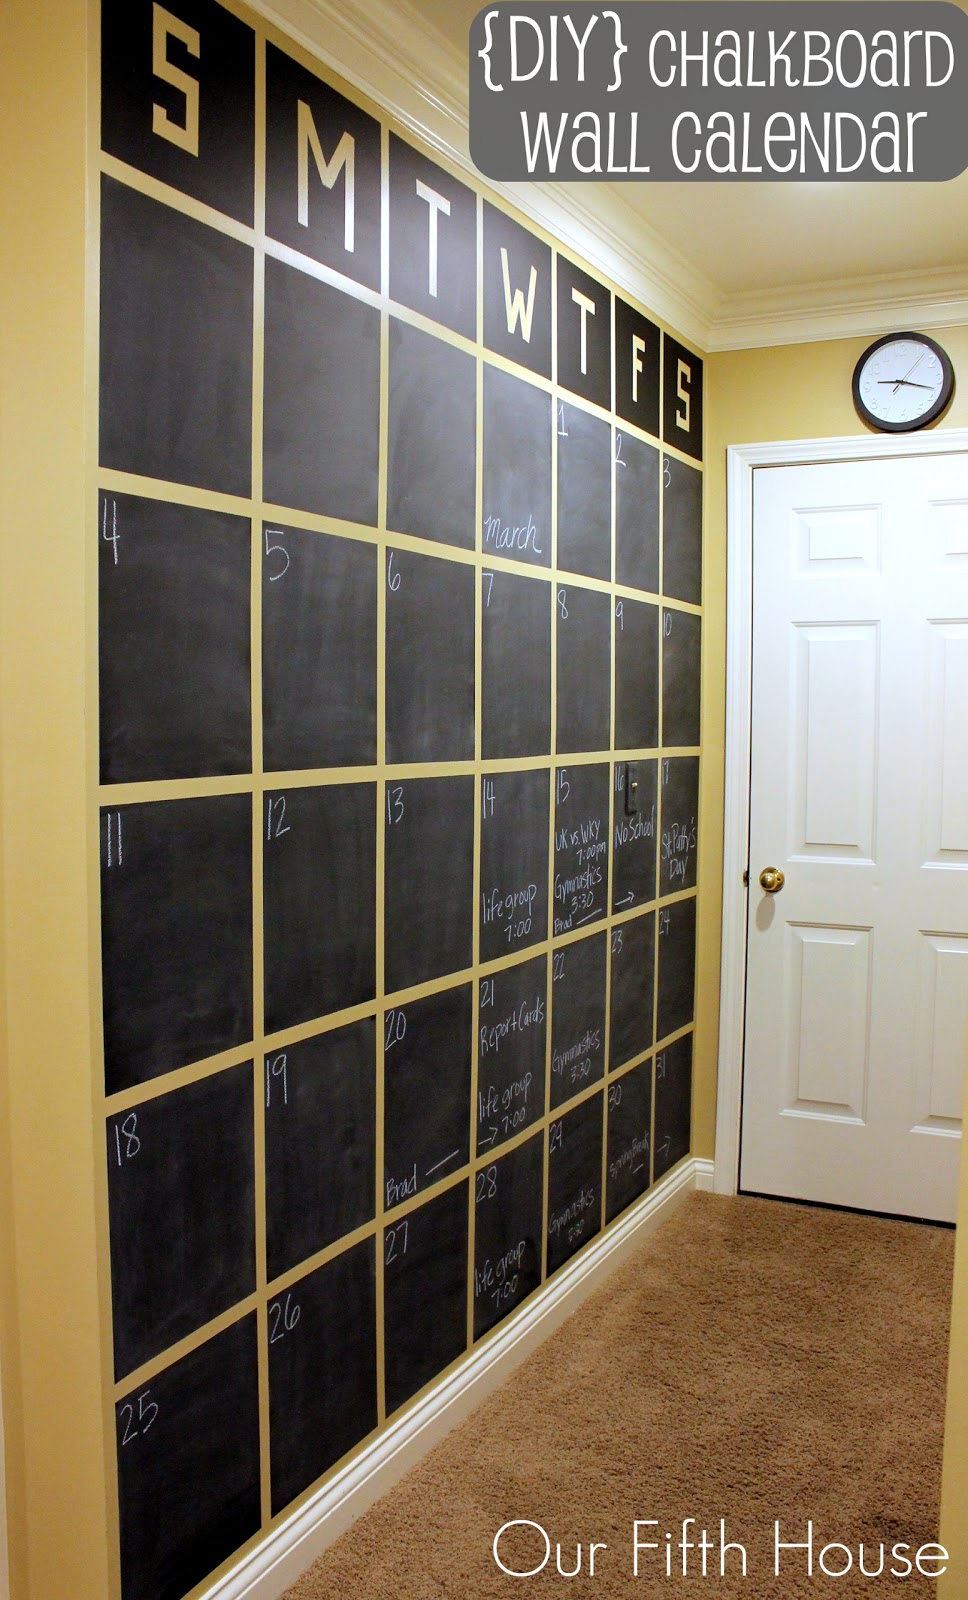 Diy Chalkboard Wall Calendar Pinterest Challenge Our